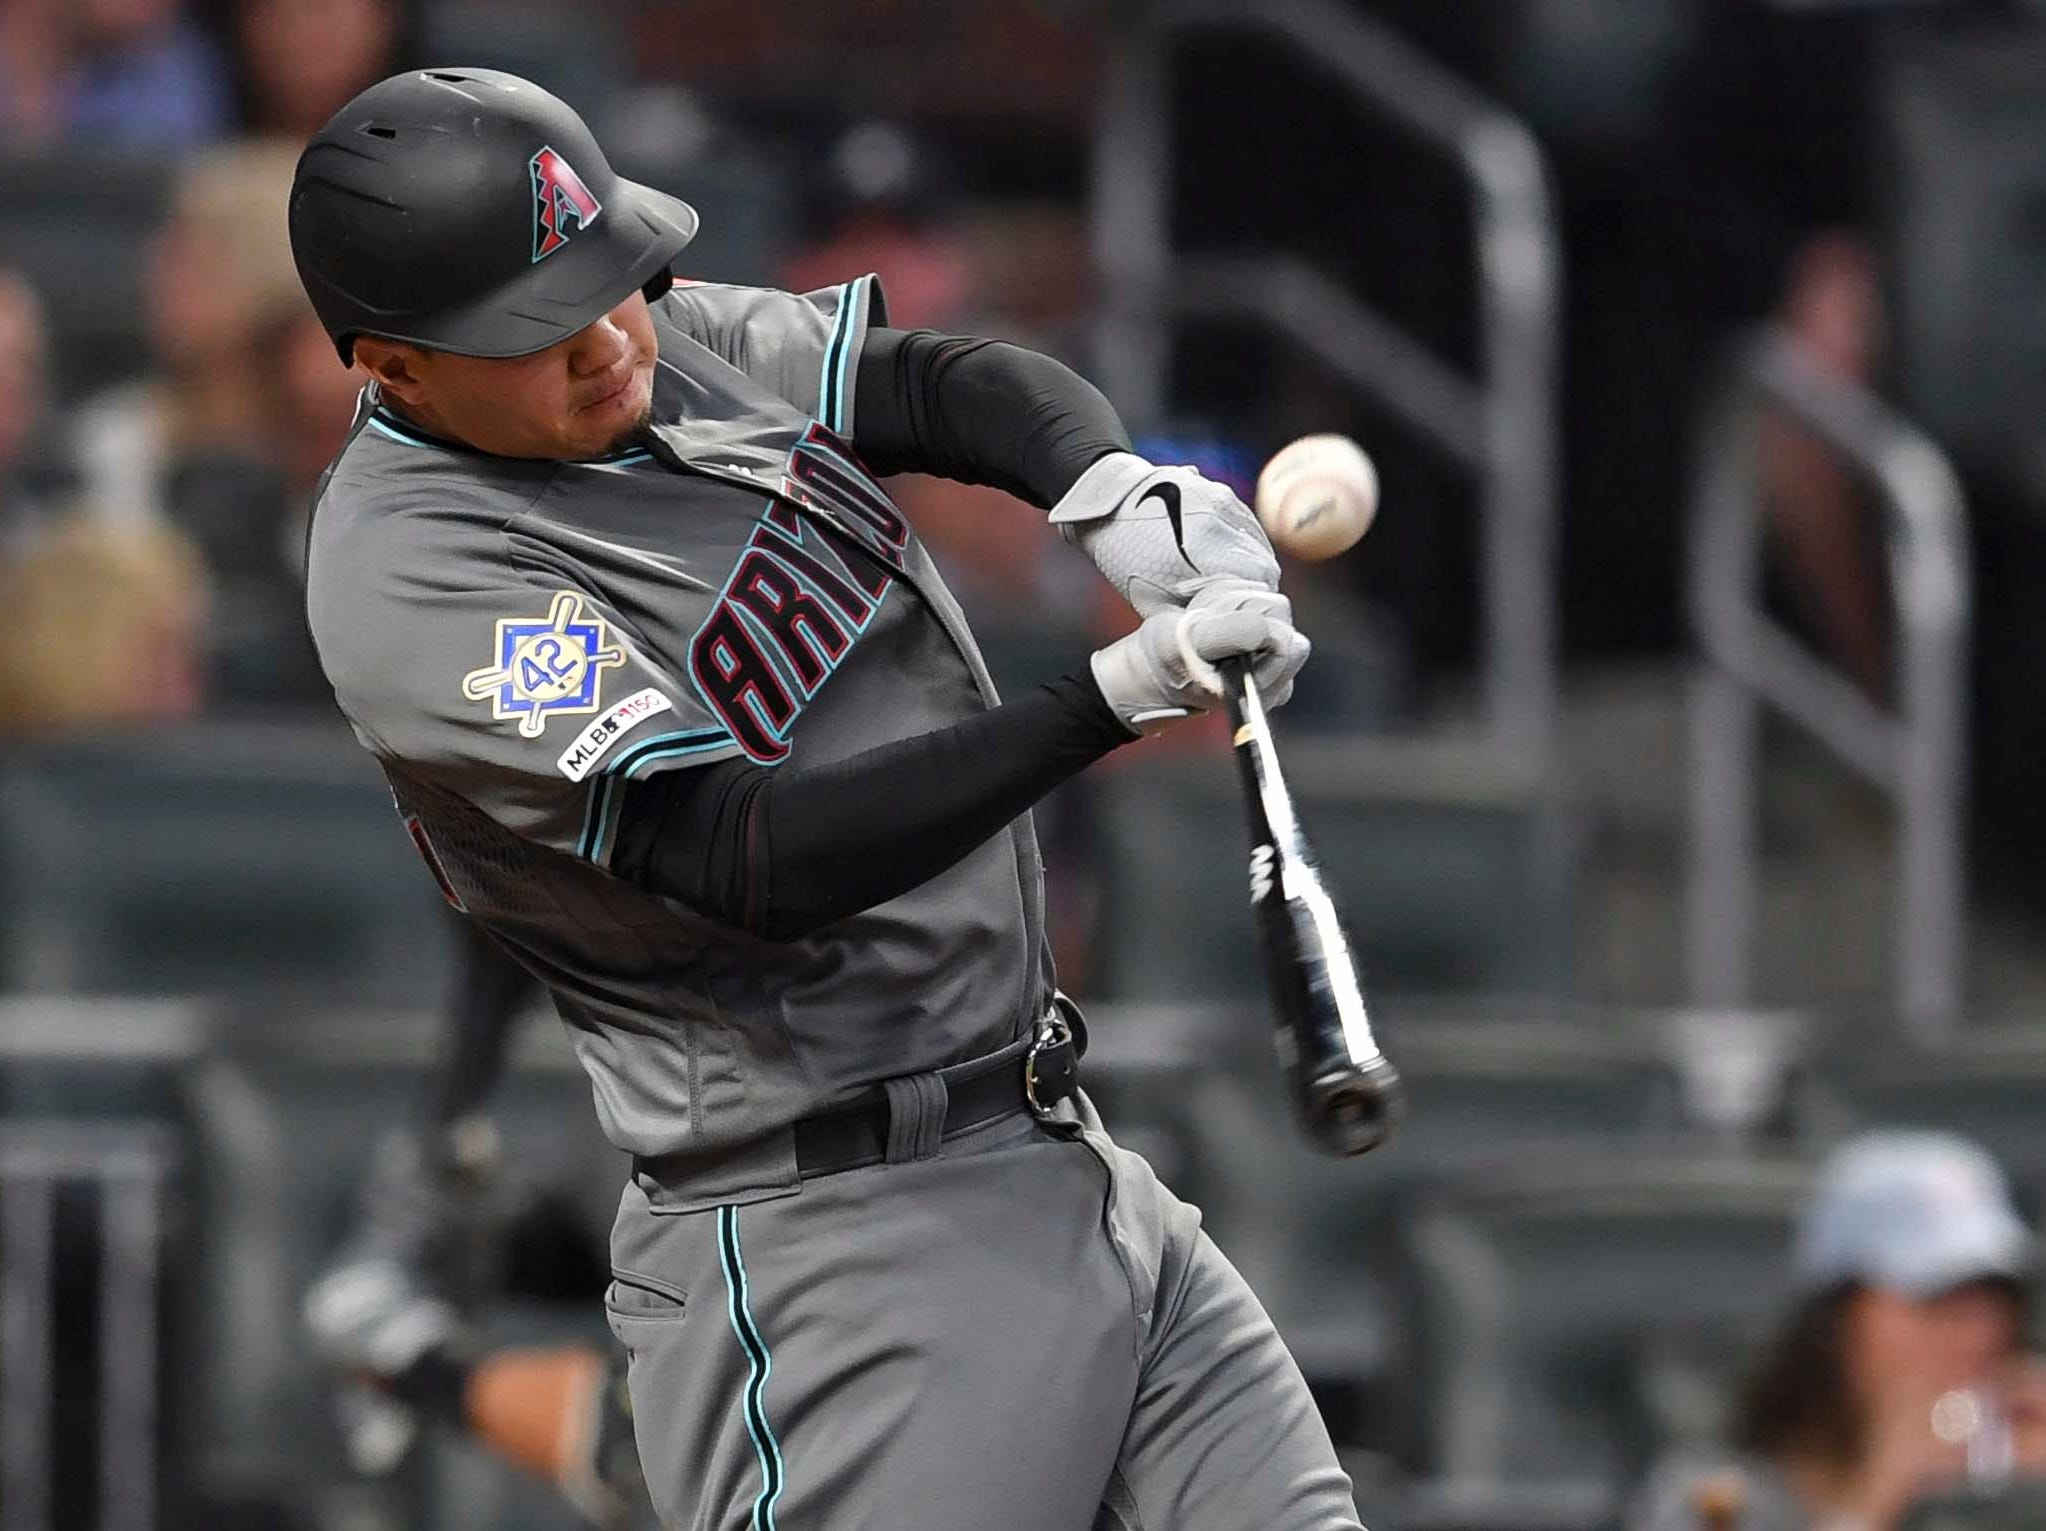 Apr 16, 2019; Atlanta, GA, USA; Arizona Diamondbacks second baseman Wilmer Flores (41) singles before scoring against the Atlanta Braves during the fourth inning at SunTrust Park. Mandatory Credit: Dale Zanine-USA TODAY Sports